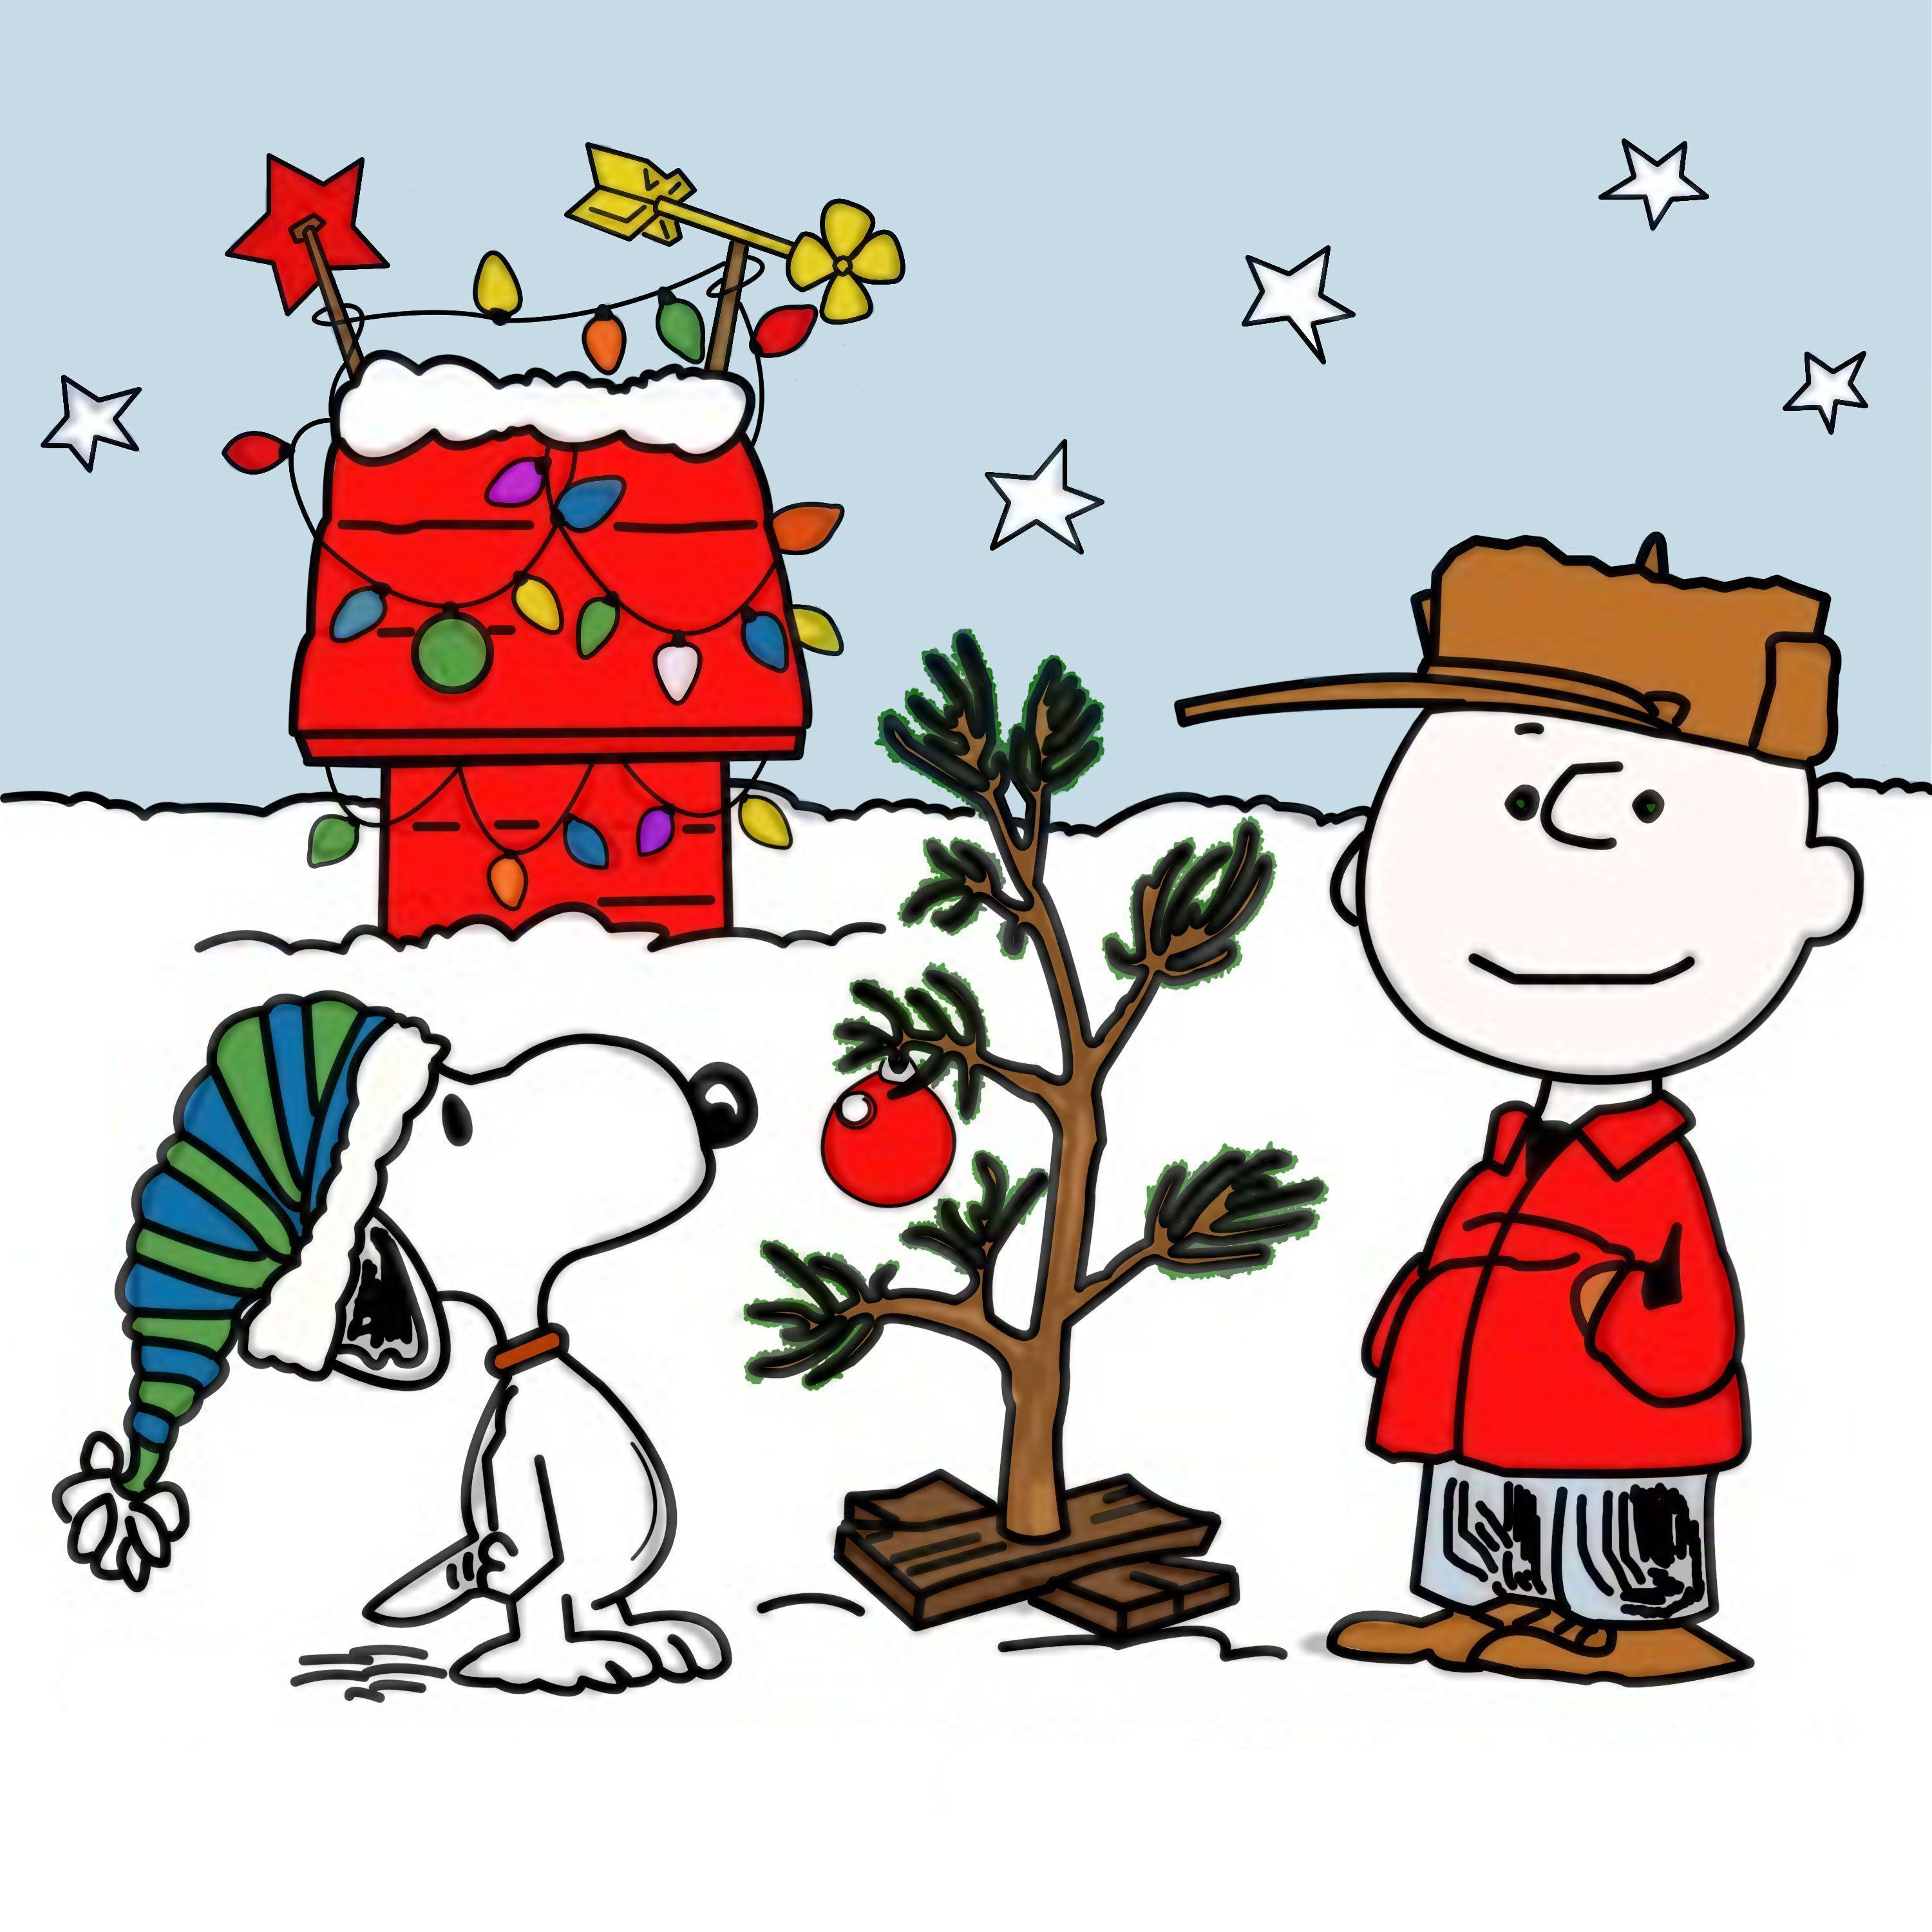 Charlie Brown Christmas Tree Wallpapers 875178 Png Images Pngio